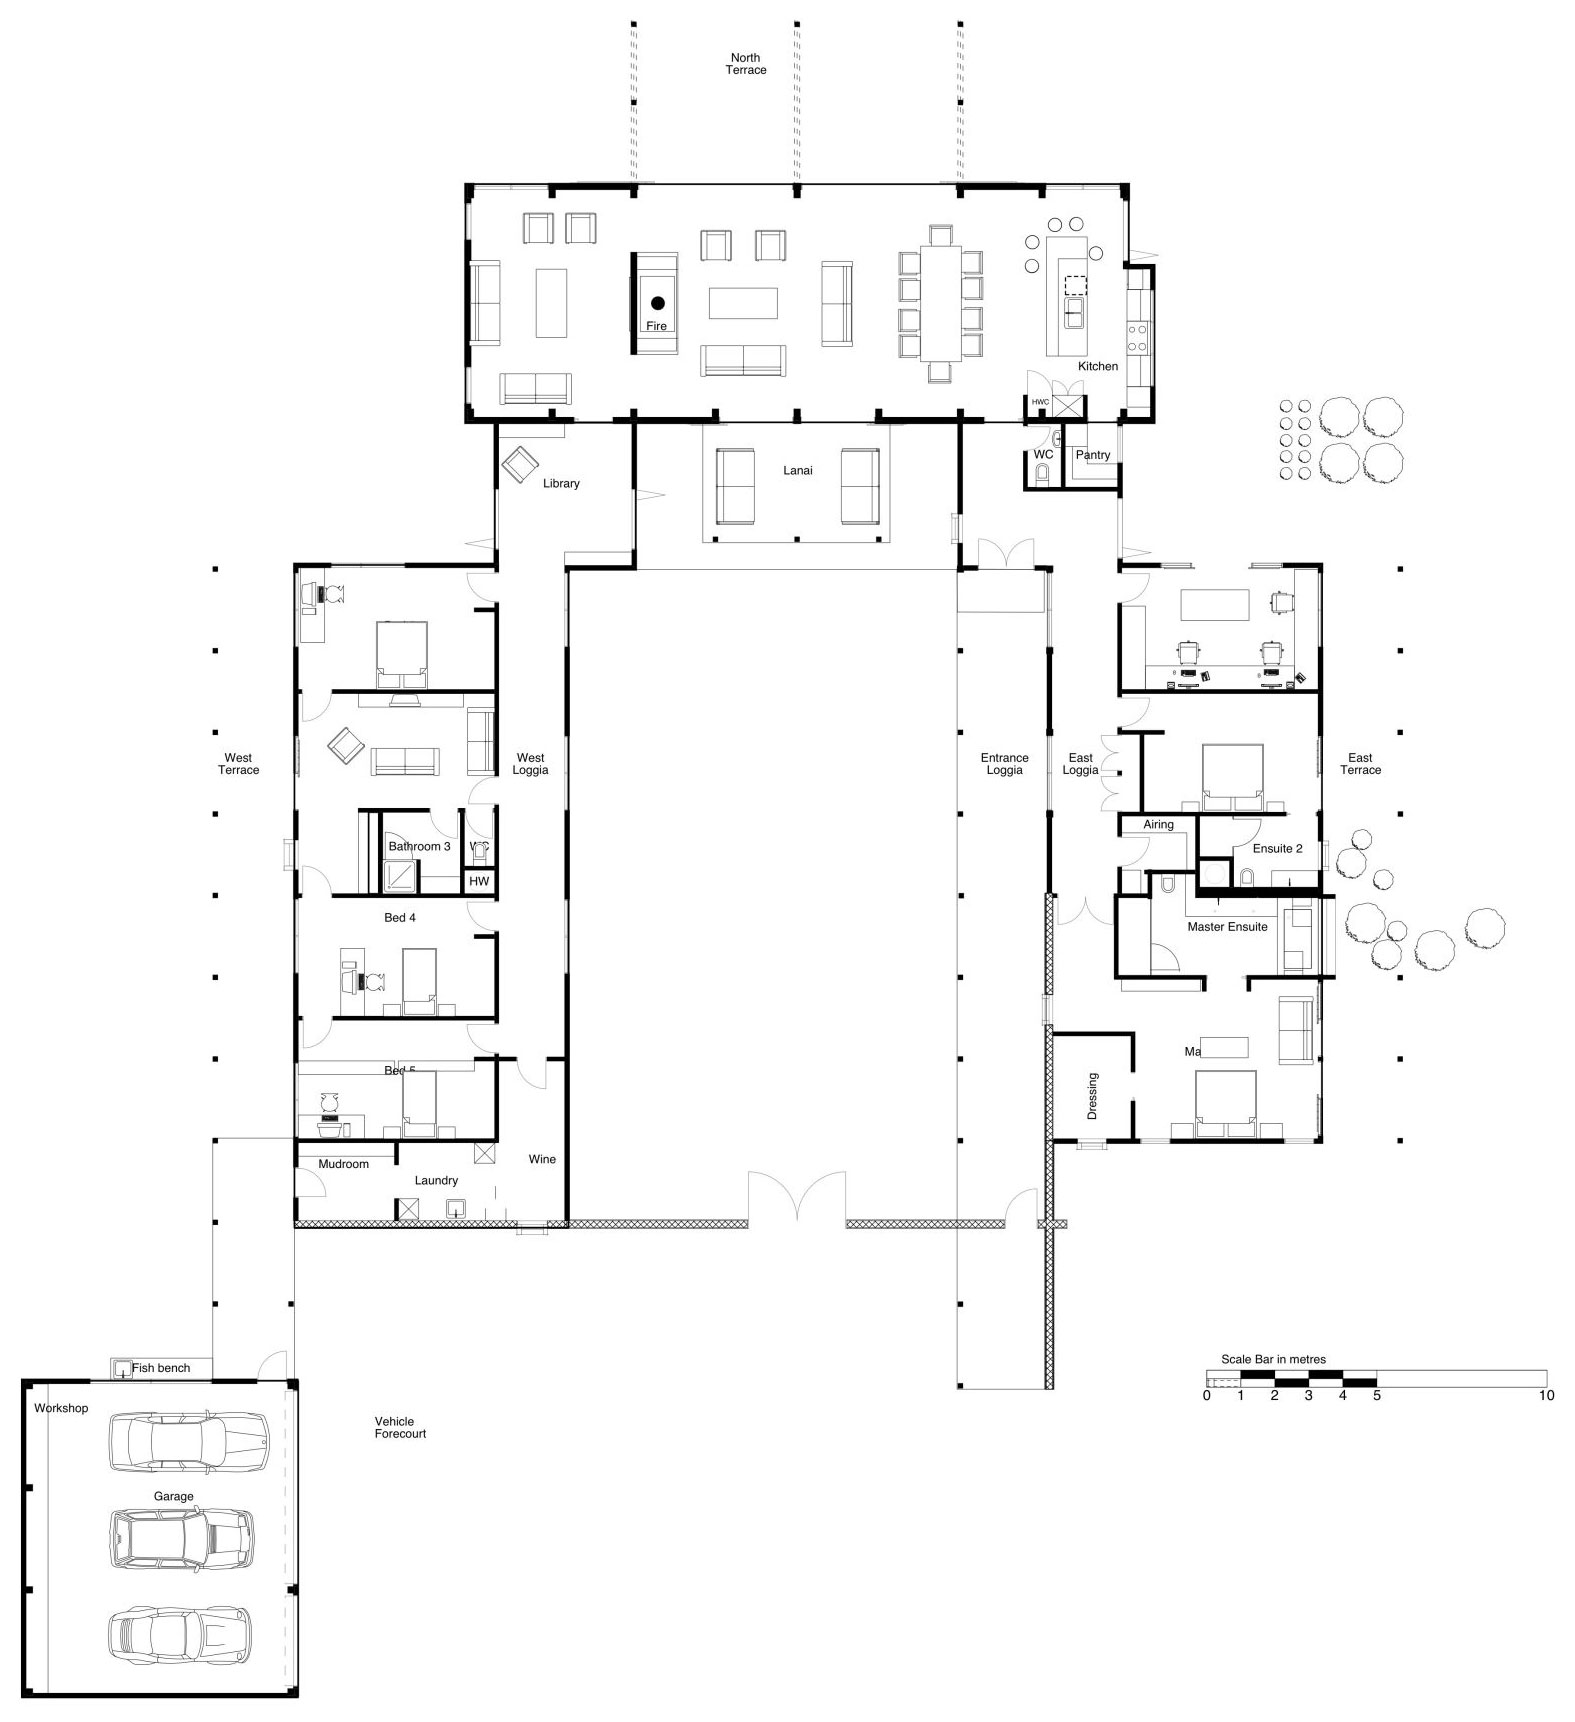 house plans design modern house plans zealand floor plans amazing finished bat floor plans custom home floor plans